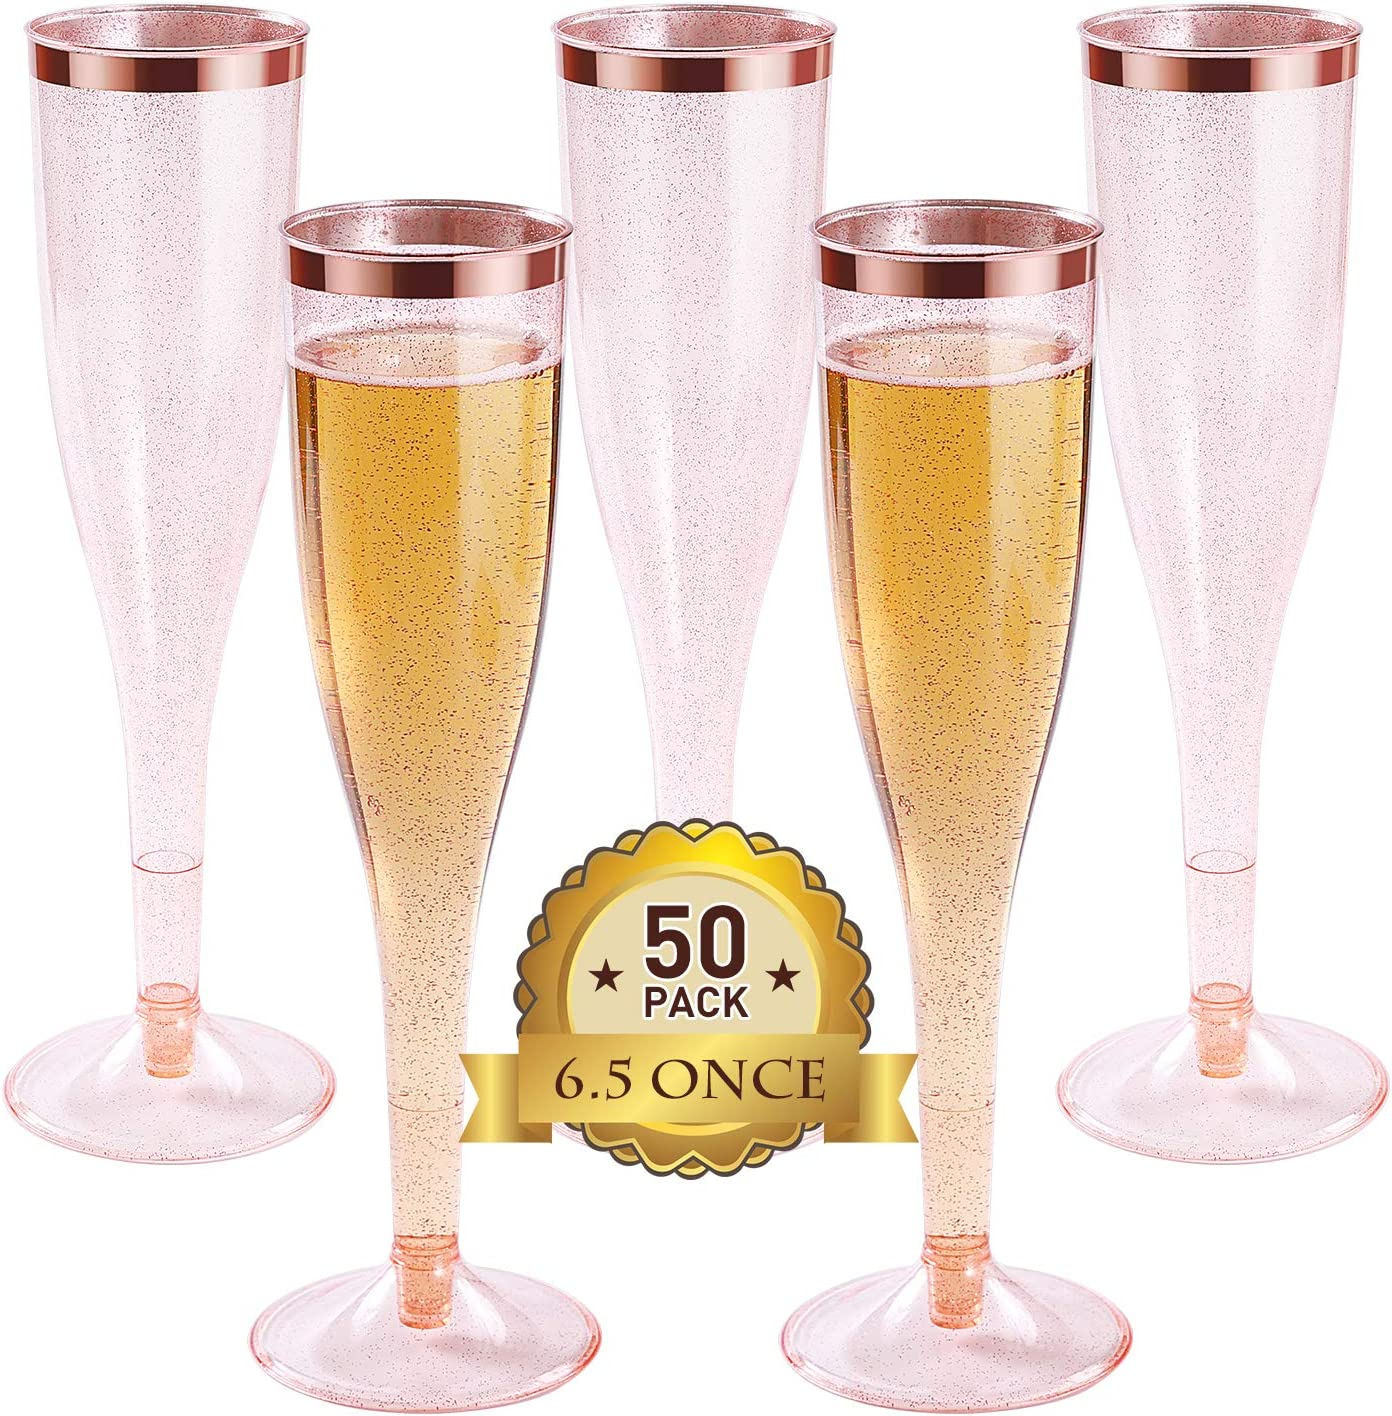 Amazon Com Plastic Champagne Flutes With Rose Gold Glitter And Rose Gold Rim Reusable Disposable Champagne Flutes Glasses For Wedding Party Cocktail Celebration 6 5oz 50pack Champagne Glasses